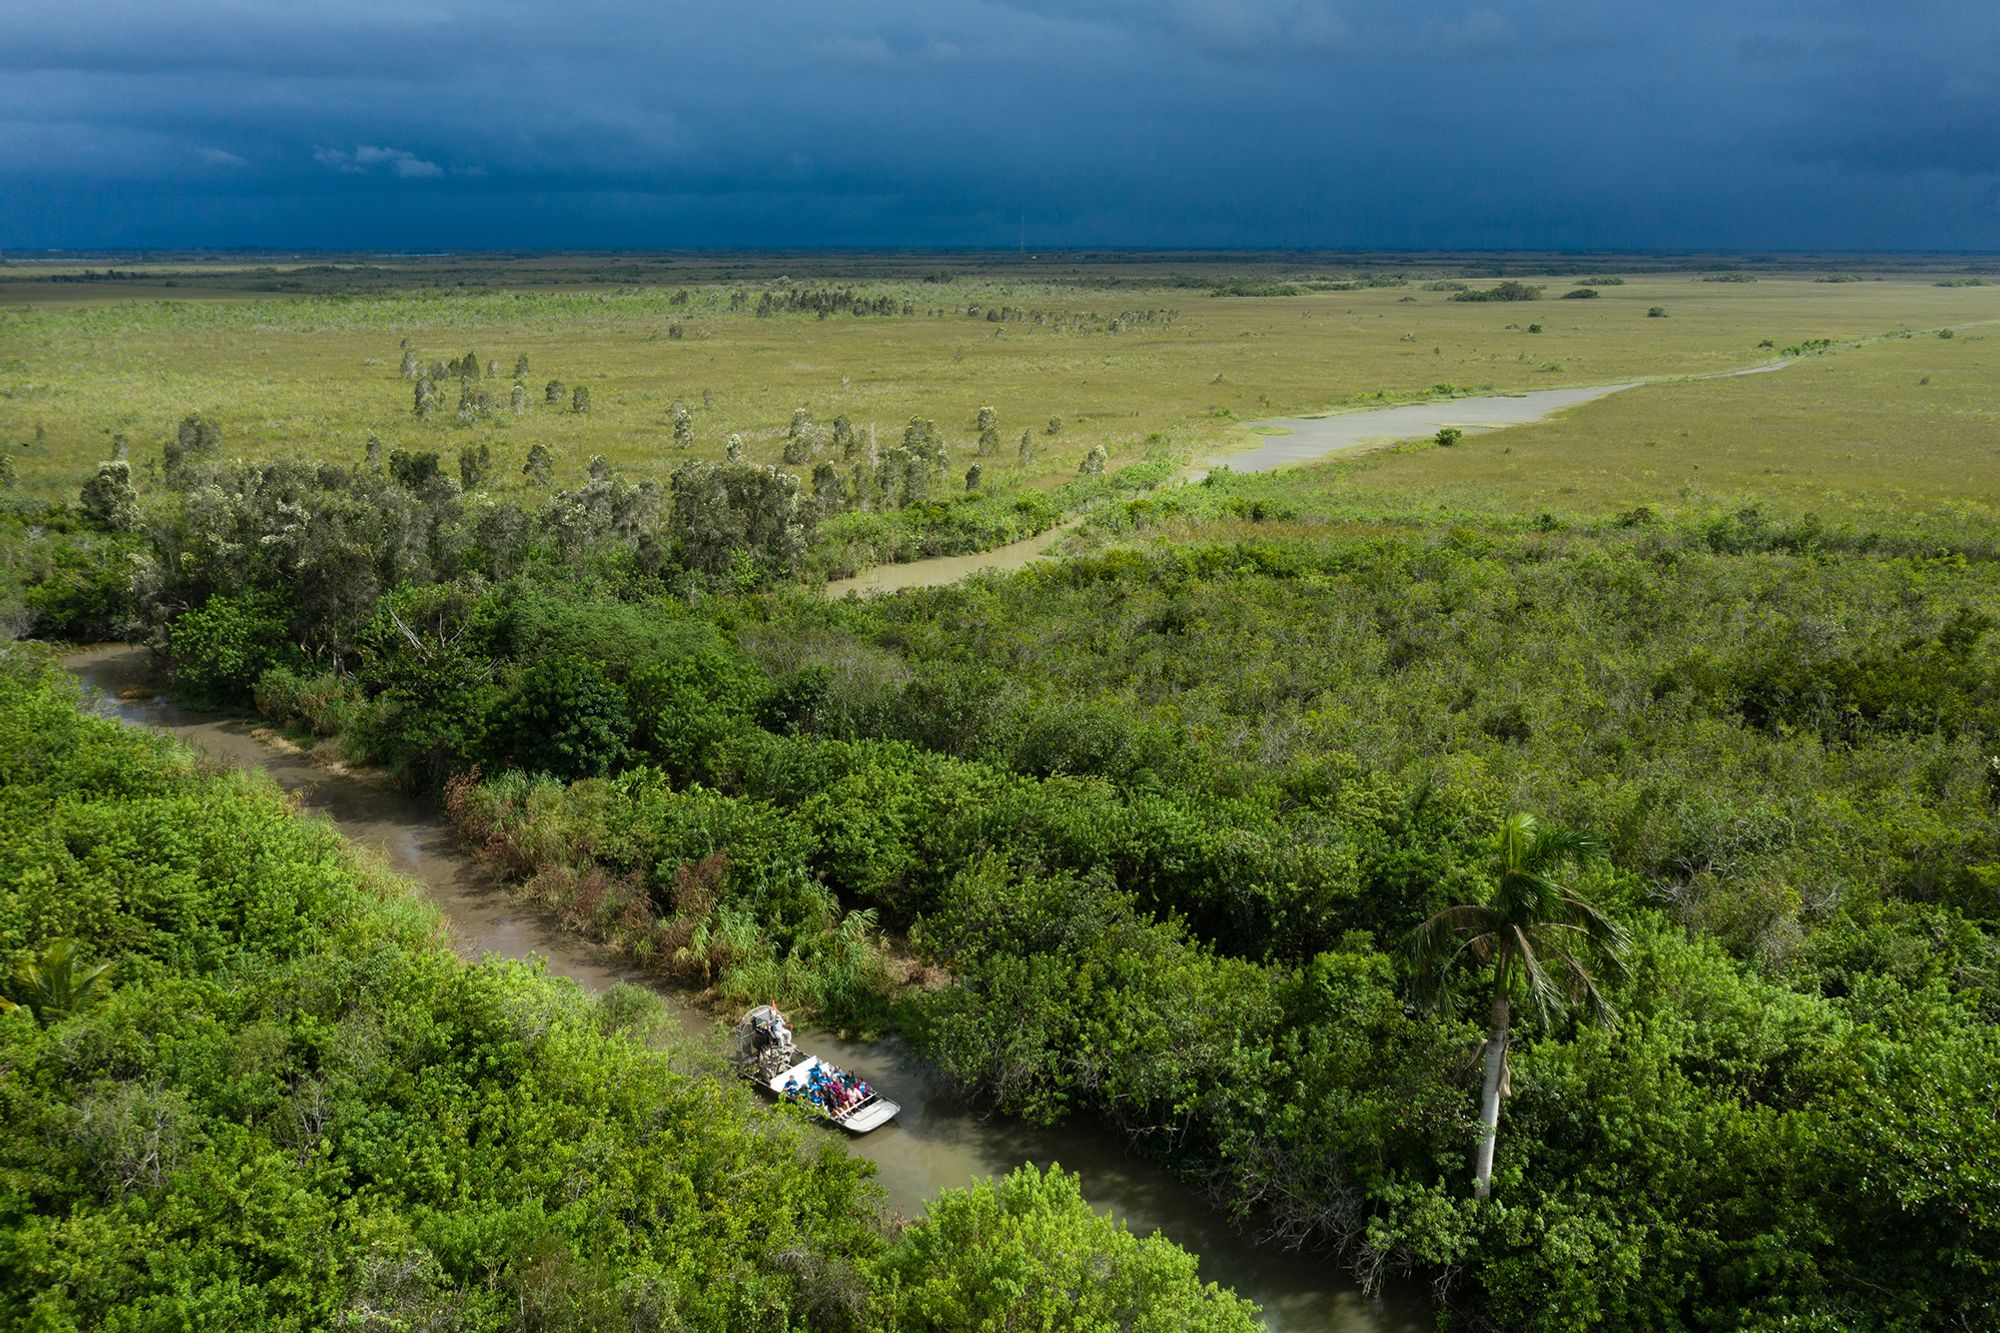 An aerial photo of an airboat driving through a canal with a storm on the horizon.